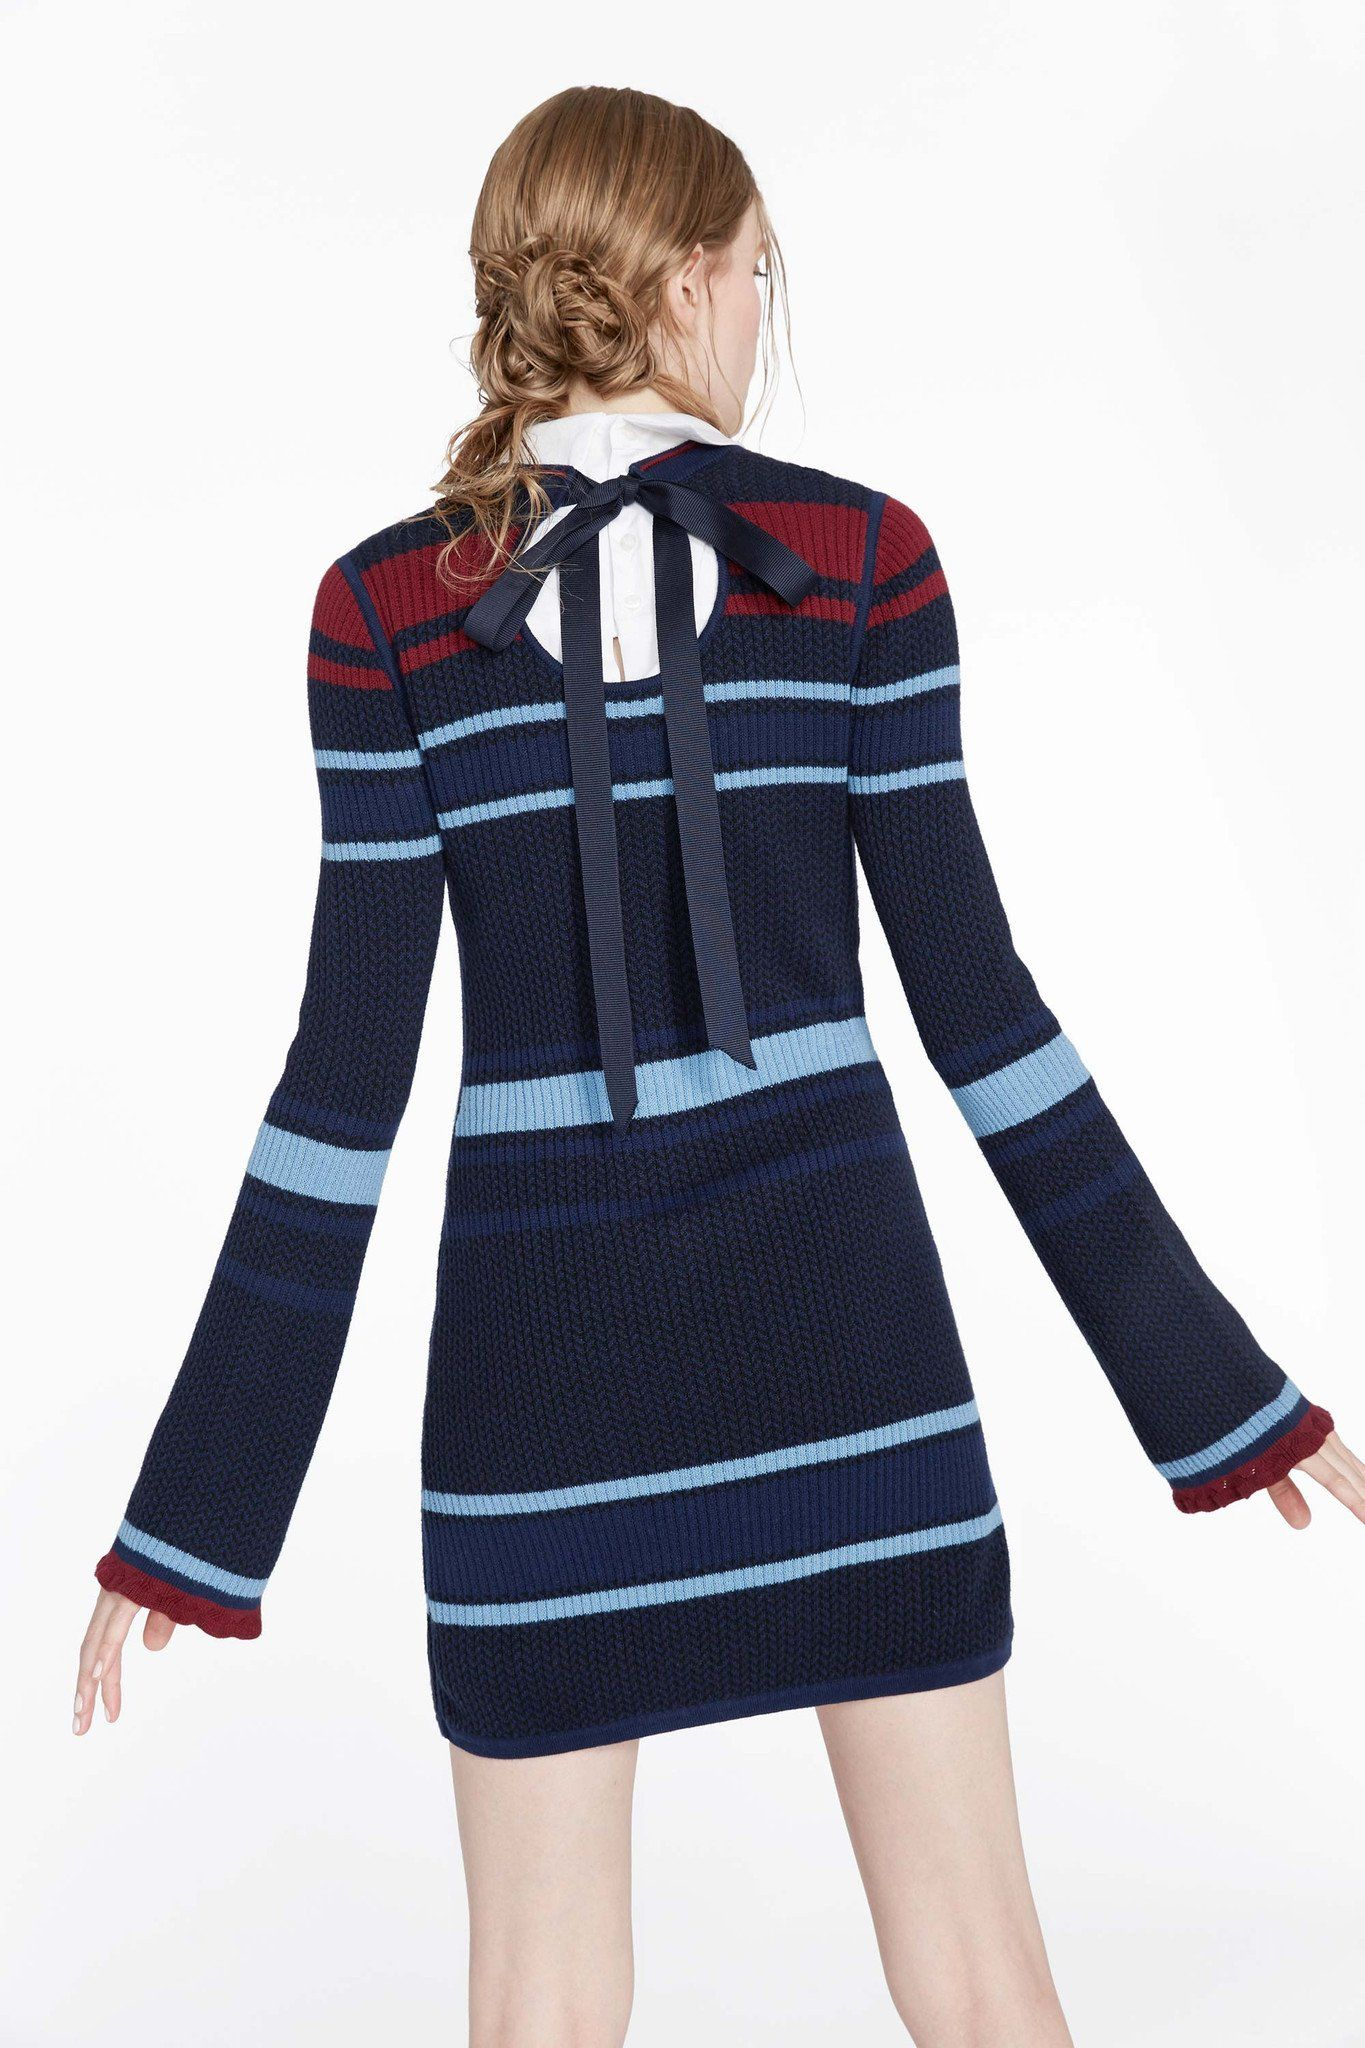 Ever wake up on a chilly morning and wish you could just wear your robe to work? Yeah, us too. That's why Misha designed this blue striped sweater dress.